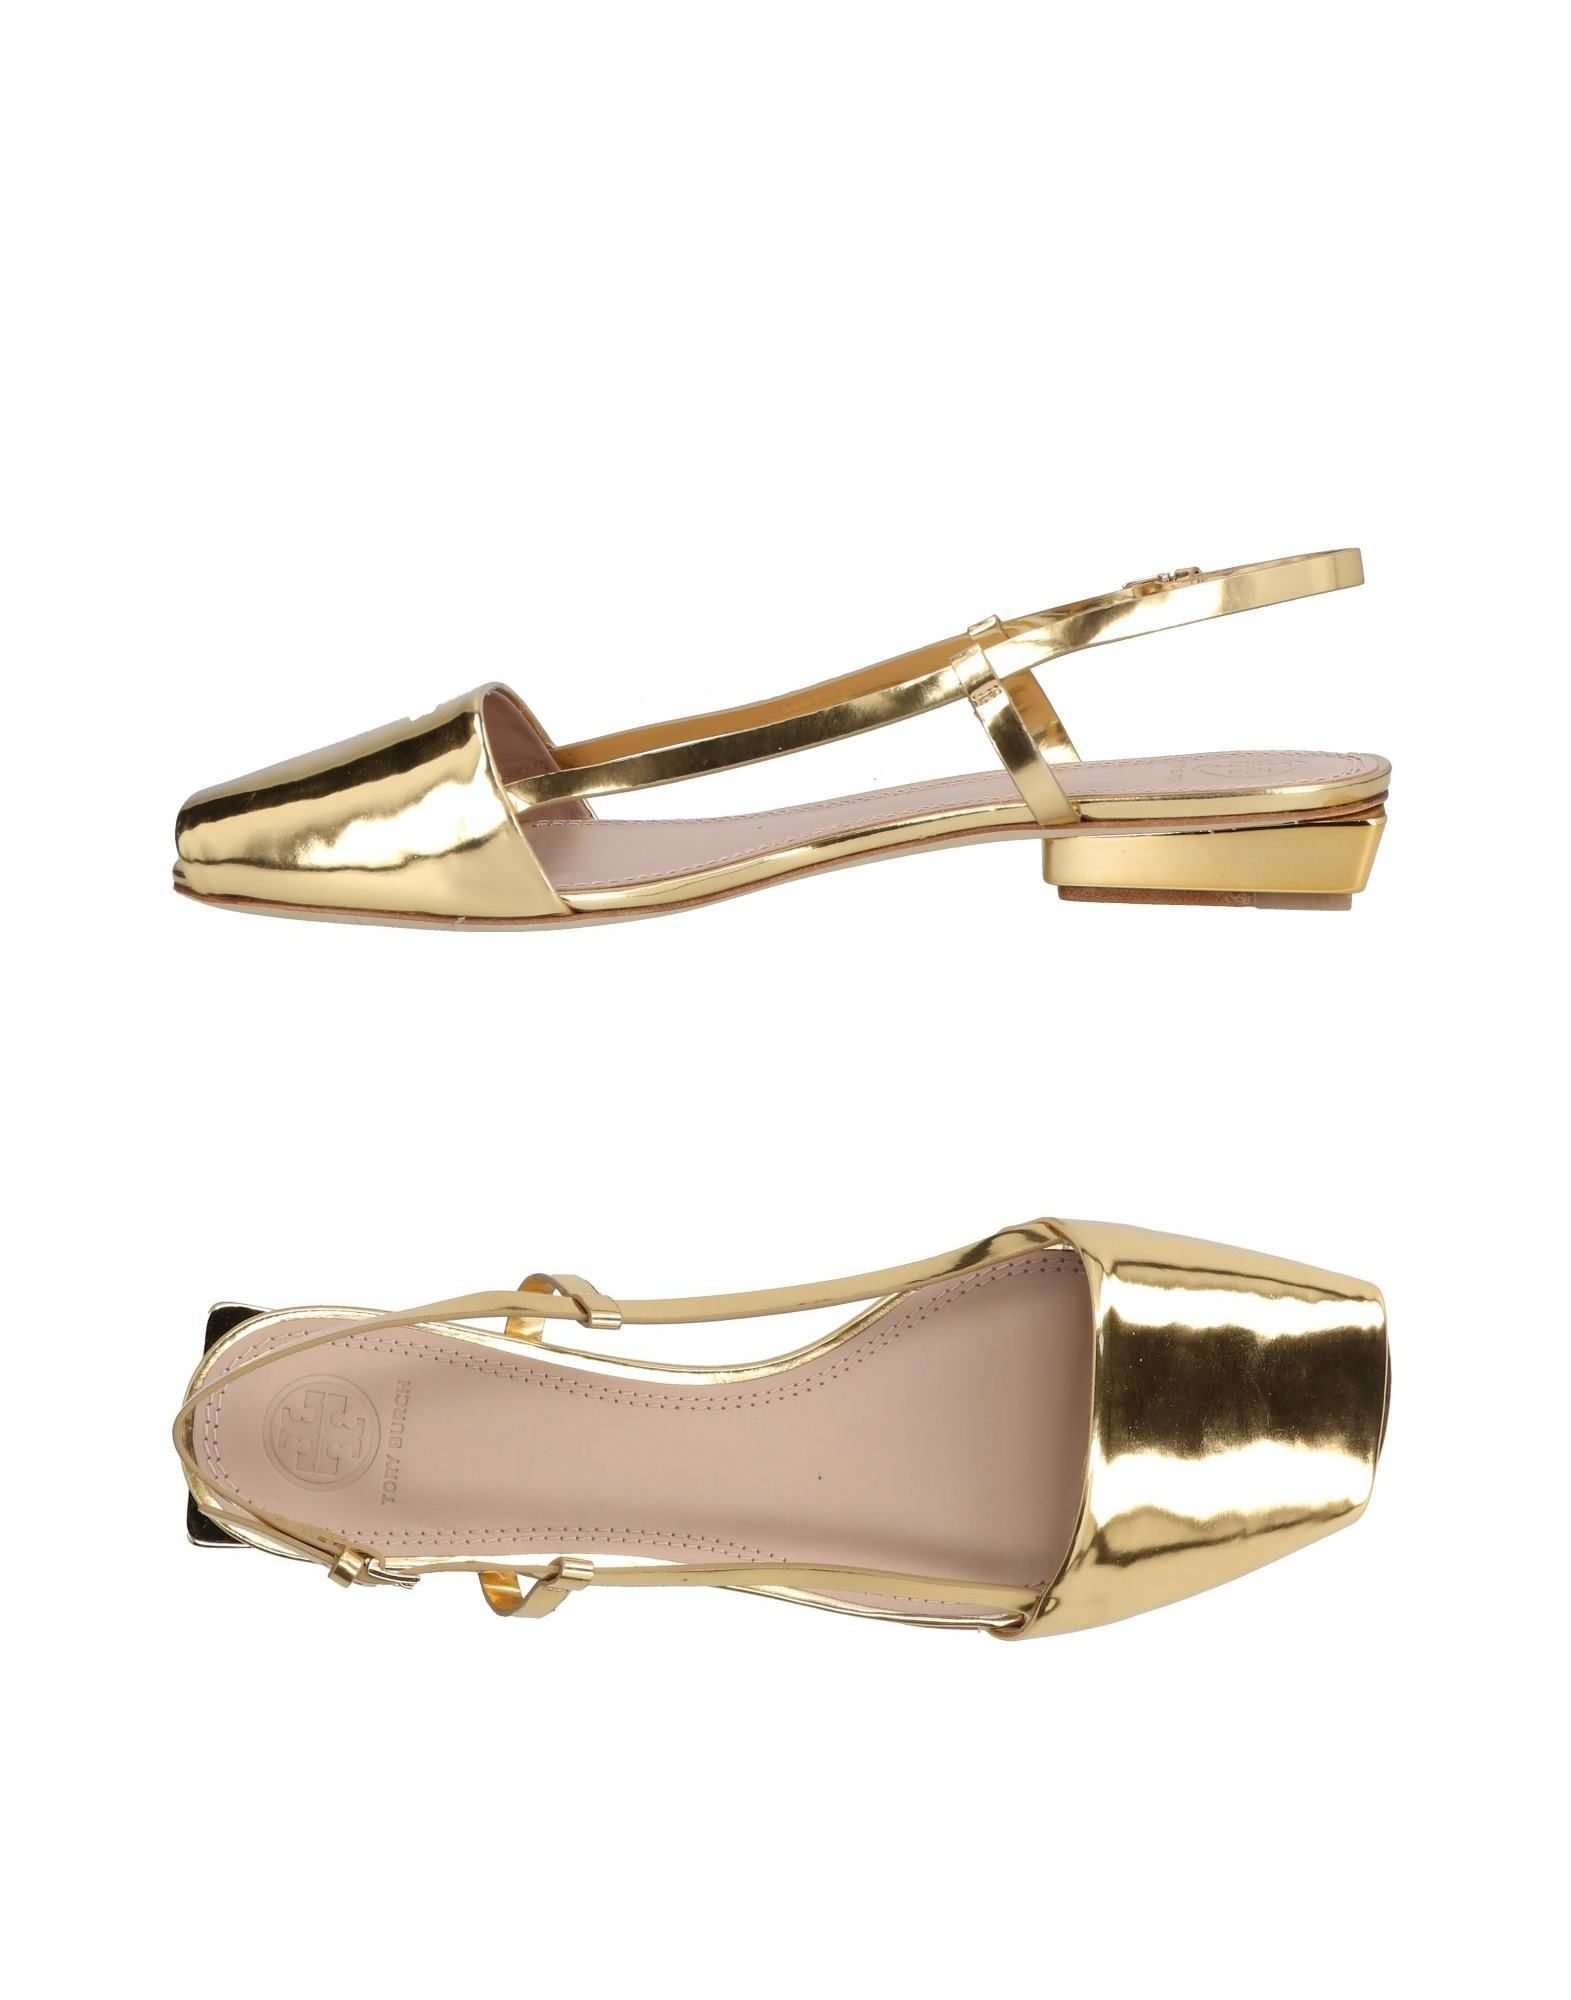 Tory Burch Burch Sandals - Women Tory Burch Burch Sandals online on  United Kingdom - 11471214DJ 37d61a